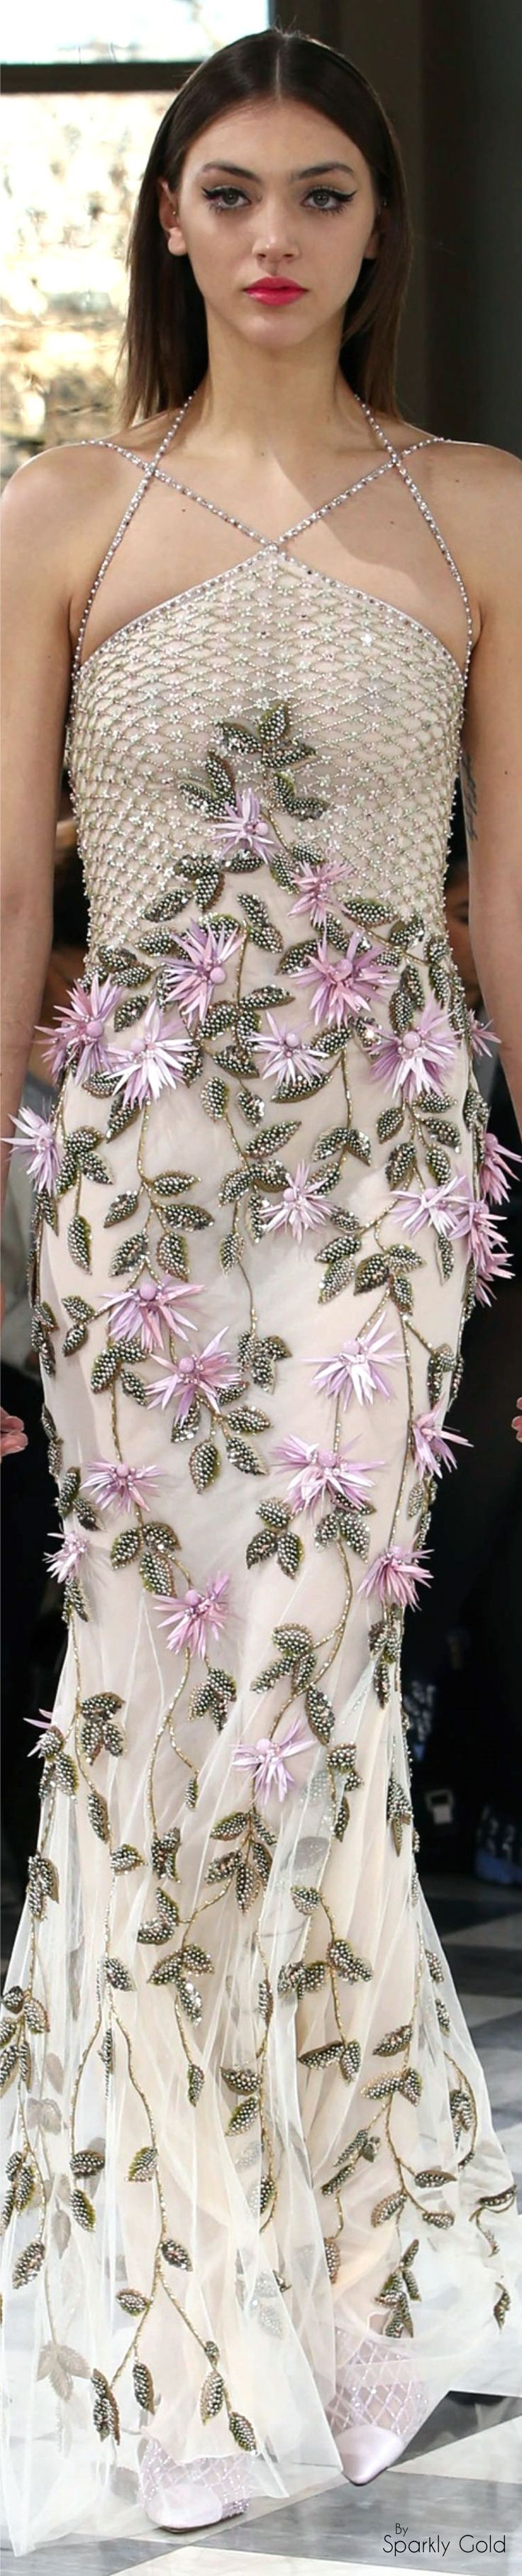 Georges Hobeika Spring 2016 Couture